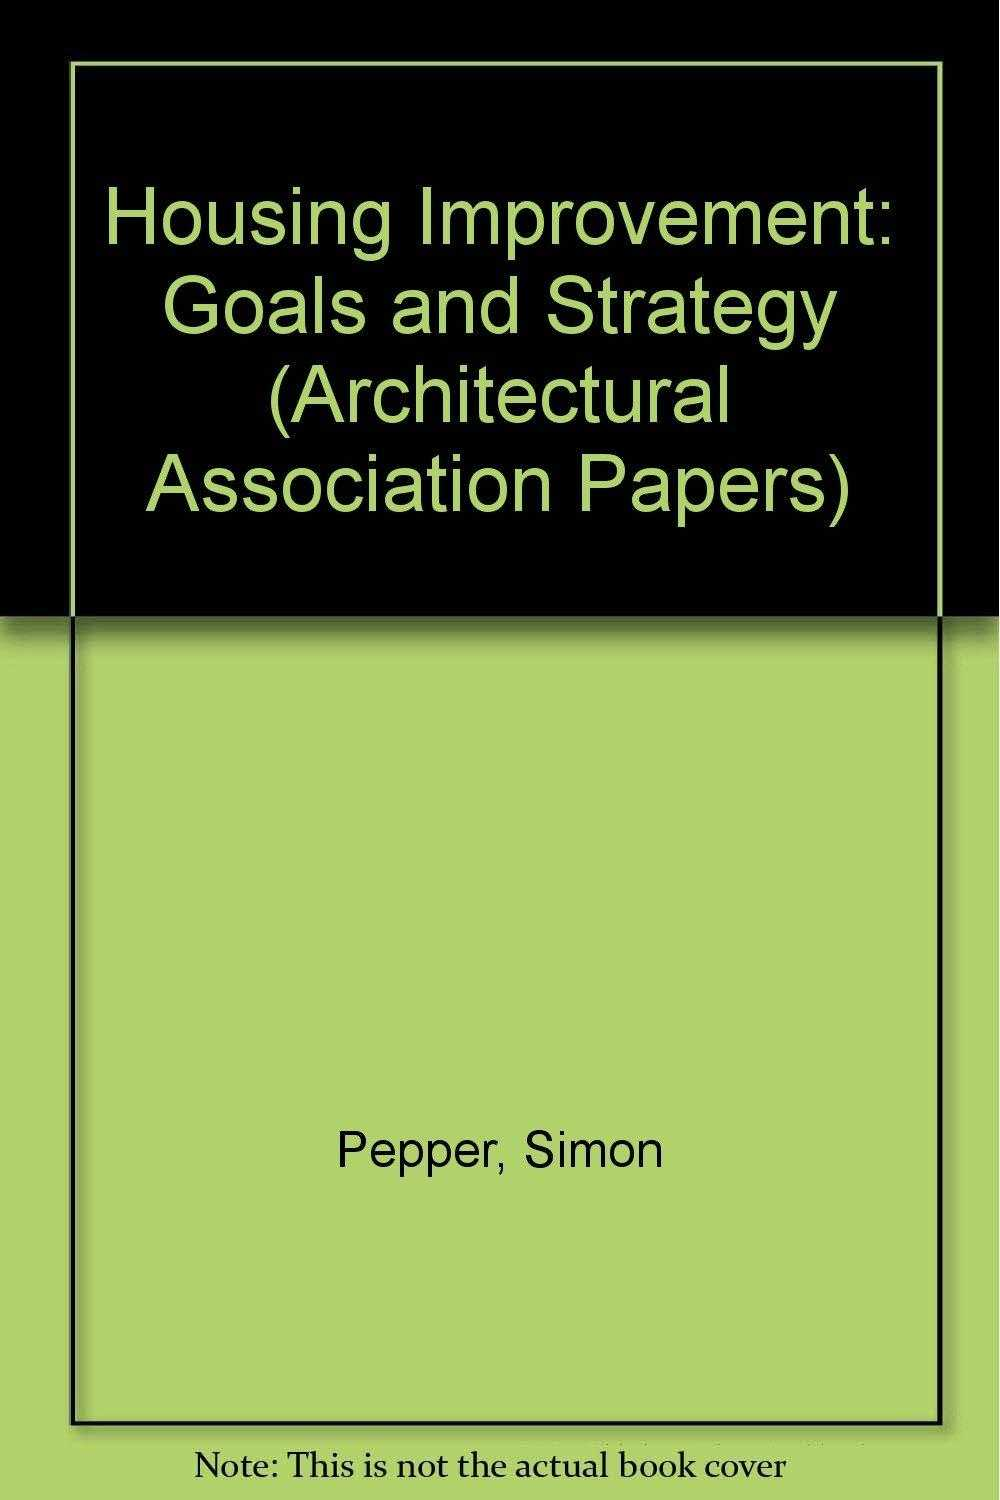 Housing Improvement: Goals and Strategy (Architectural Association Papers) [Hardcover], Pepper, Simon